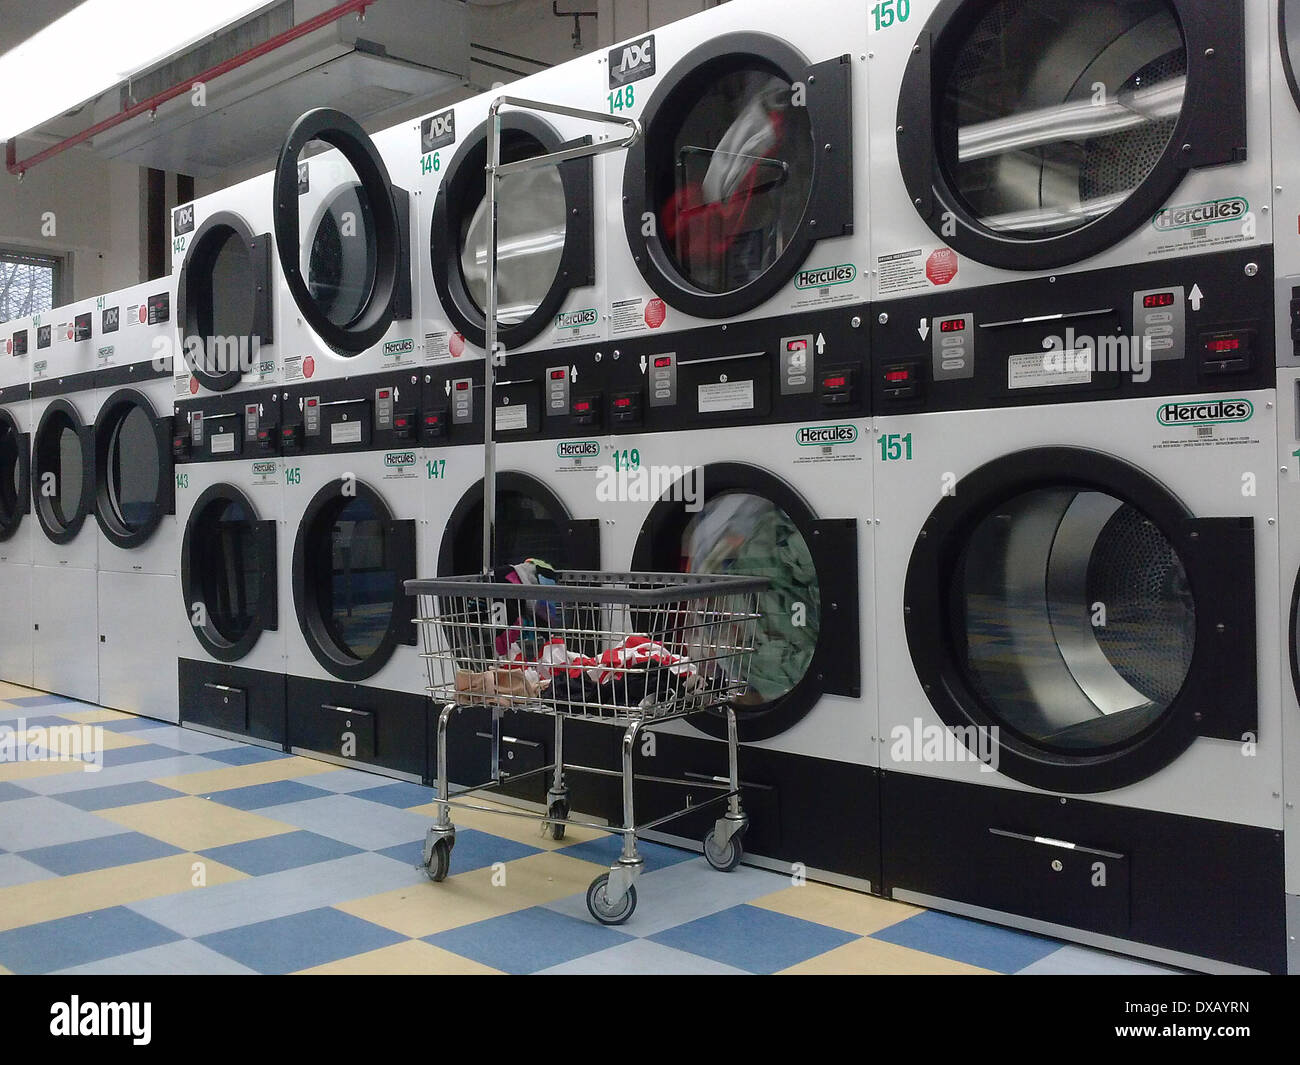 Fold laundry stock photos fold laundry stock images alamy an empty laundry room in an apartment building in new york on march 16 2014 solutioingenieria